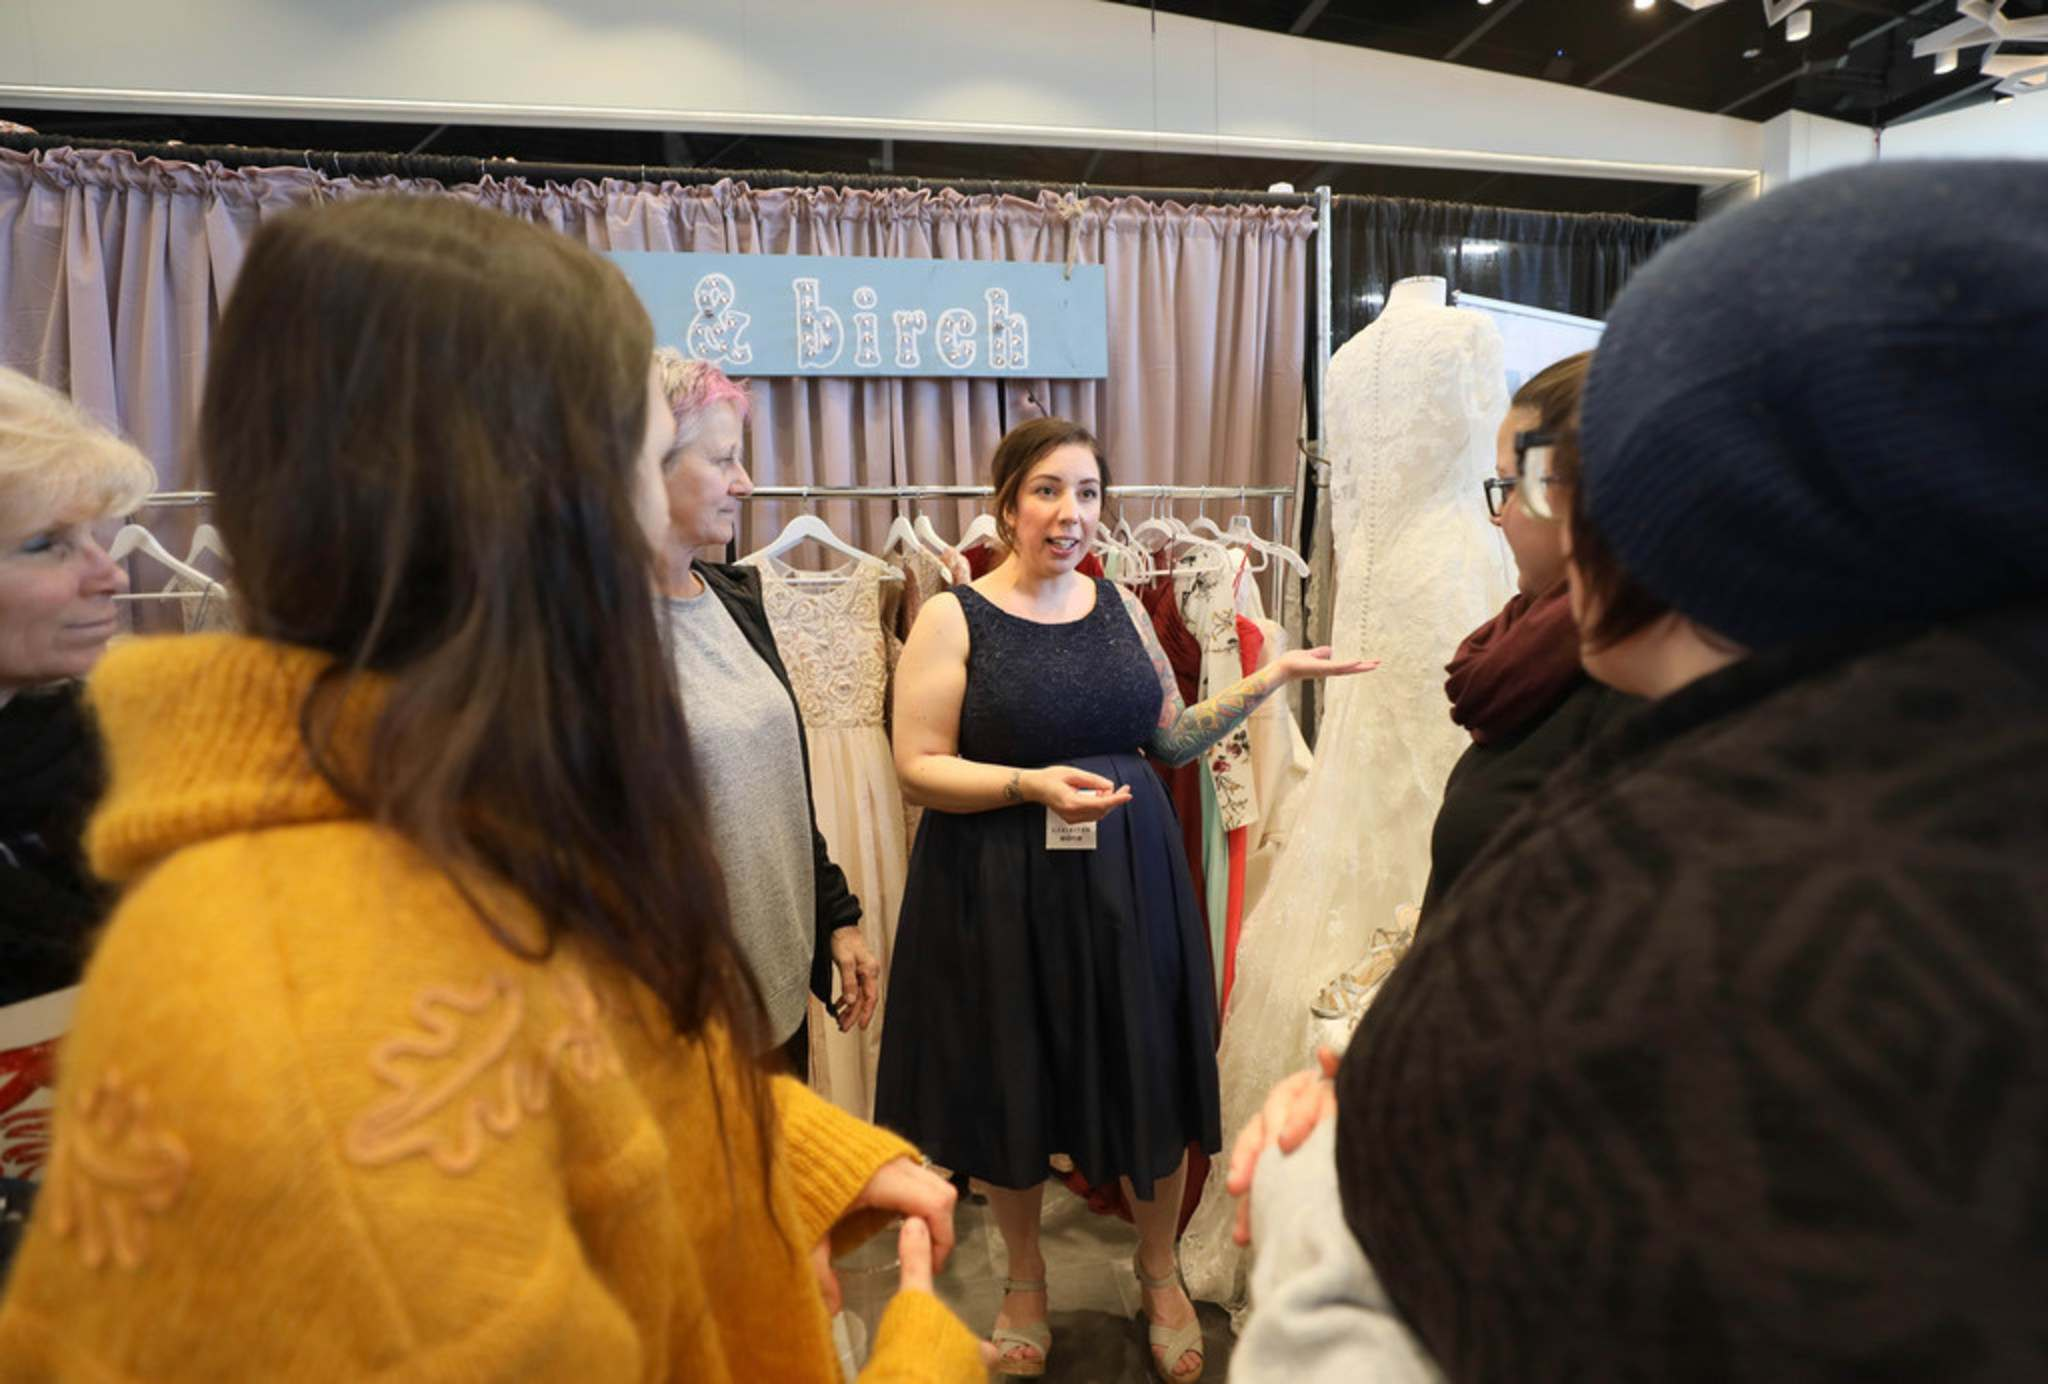 Ruth Bonneville / Winnipeg Free Press</p><p>Amanda Murdock owner of Pearl & Birch wedding consignment store, shows potential clients her dresses at her booth at the the Wonderful Wedding Show at RBC Convention Centre.</p>